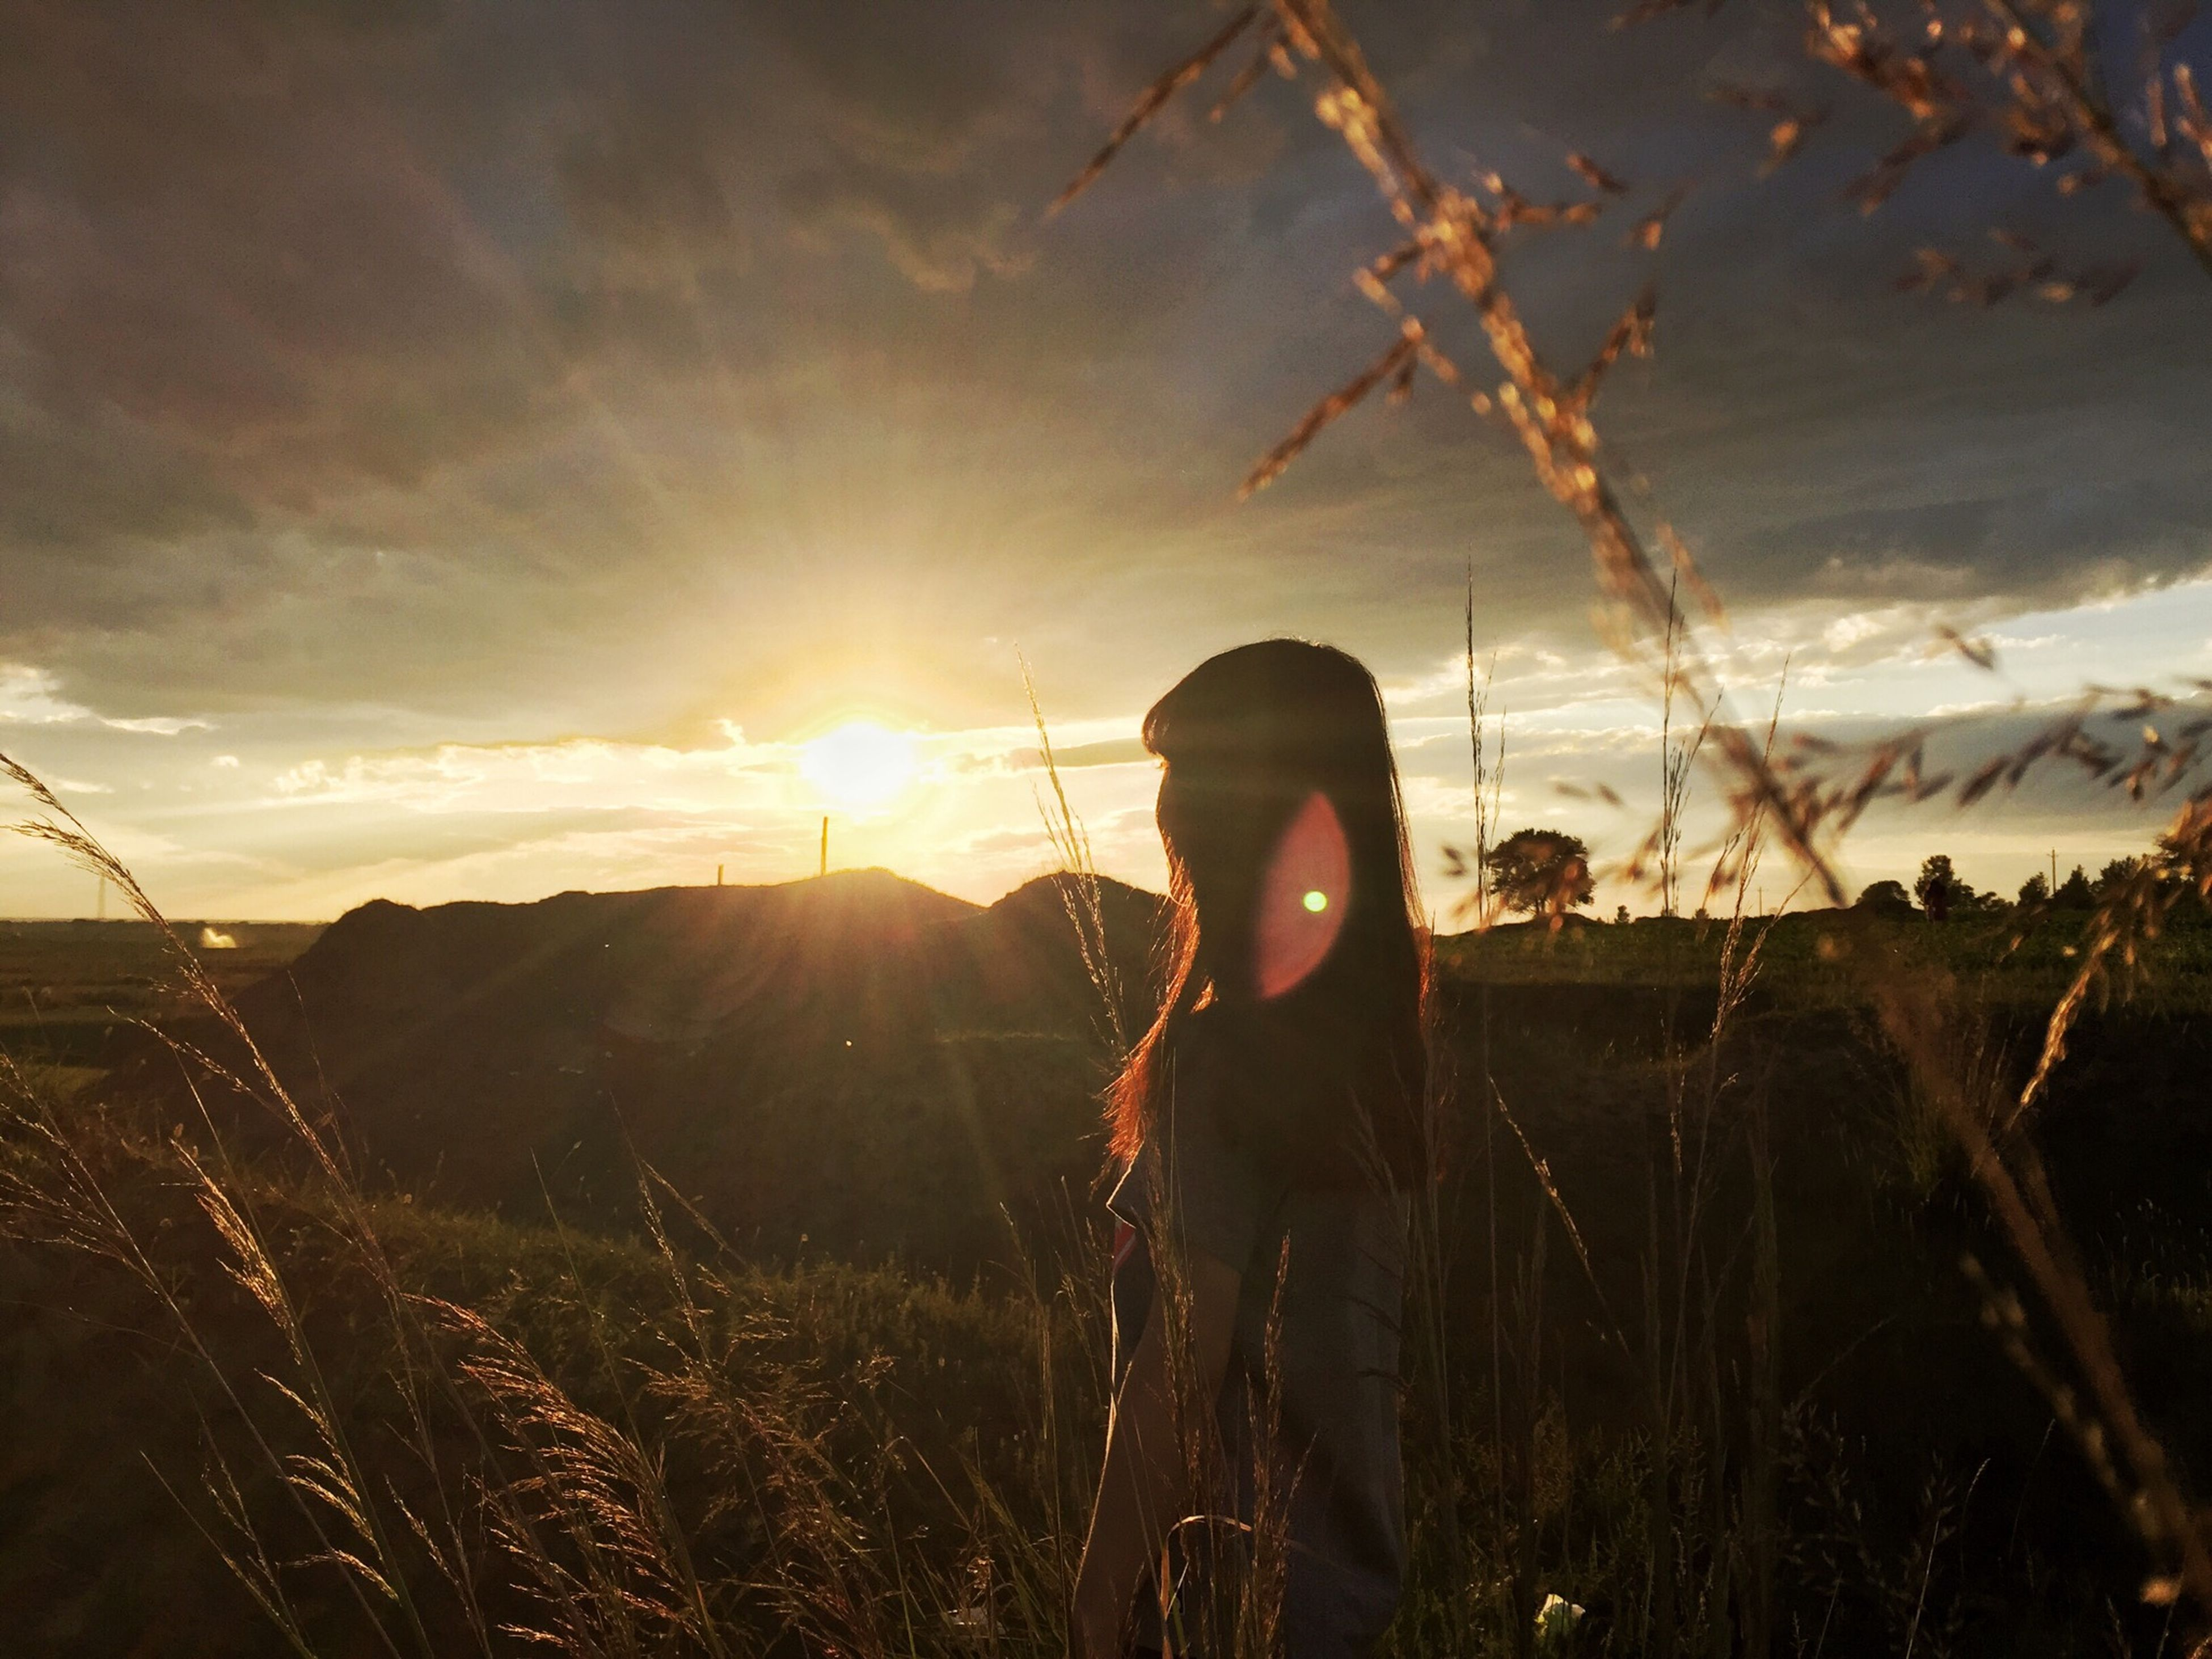 sky, lifestyles, leisure activity, sunset, sun, nature, sunlight, plant, standing, tranquility, rear view, beauty in nature, cloud - sky, person, outdoors, growth, field, sunbeam